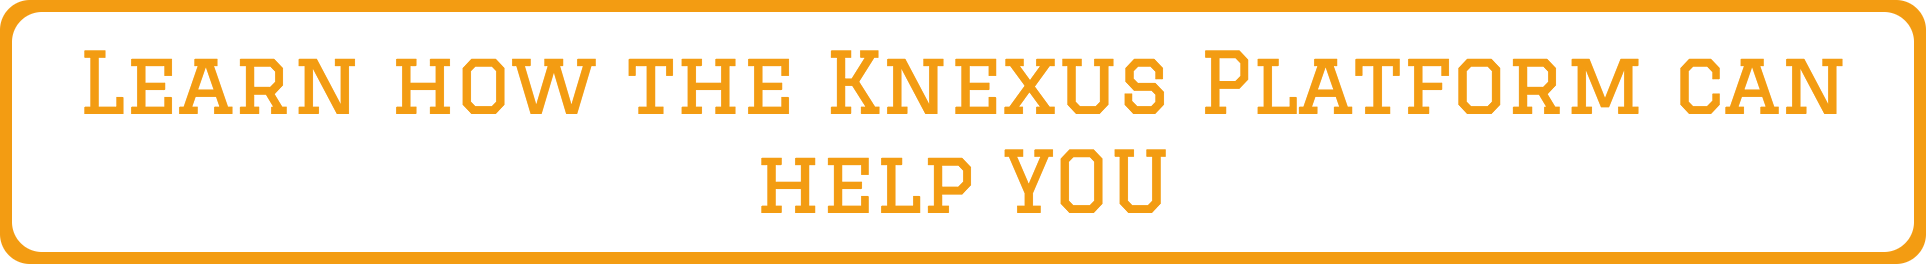 learn how knexus can help you